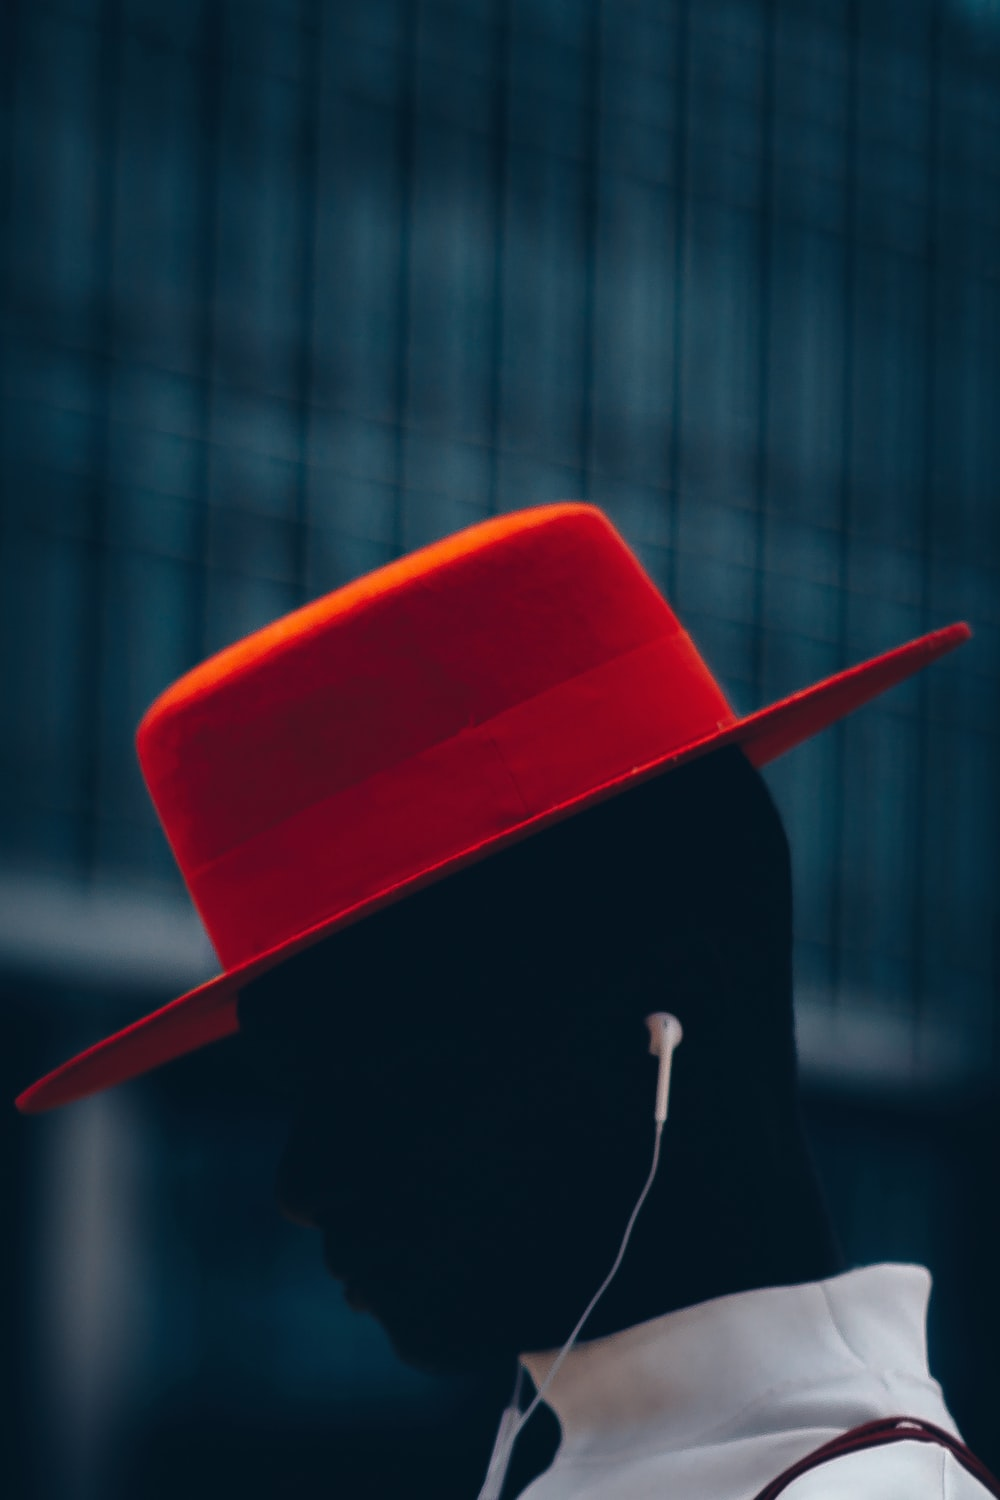 person wearing red hat